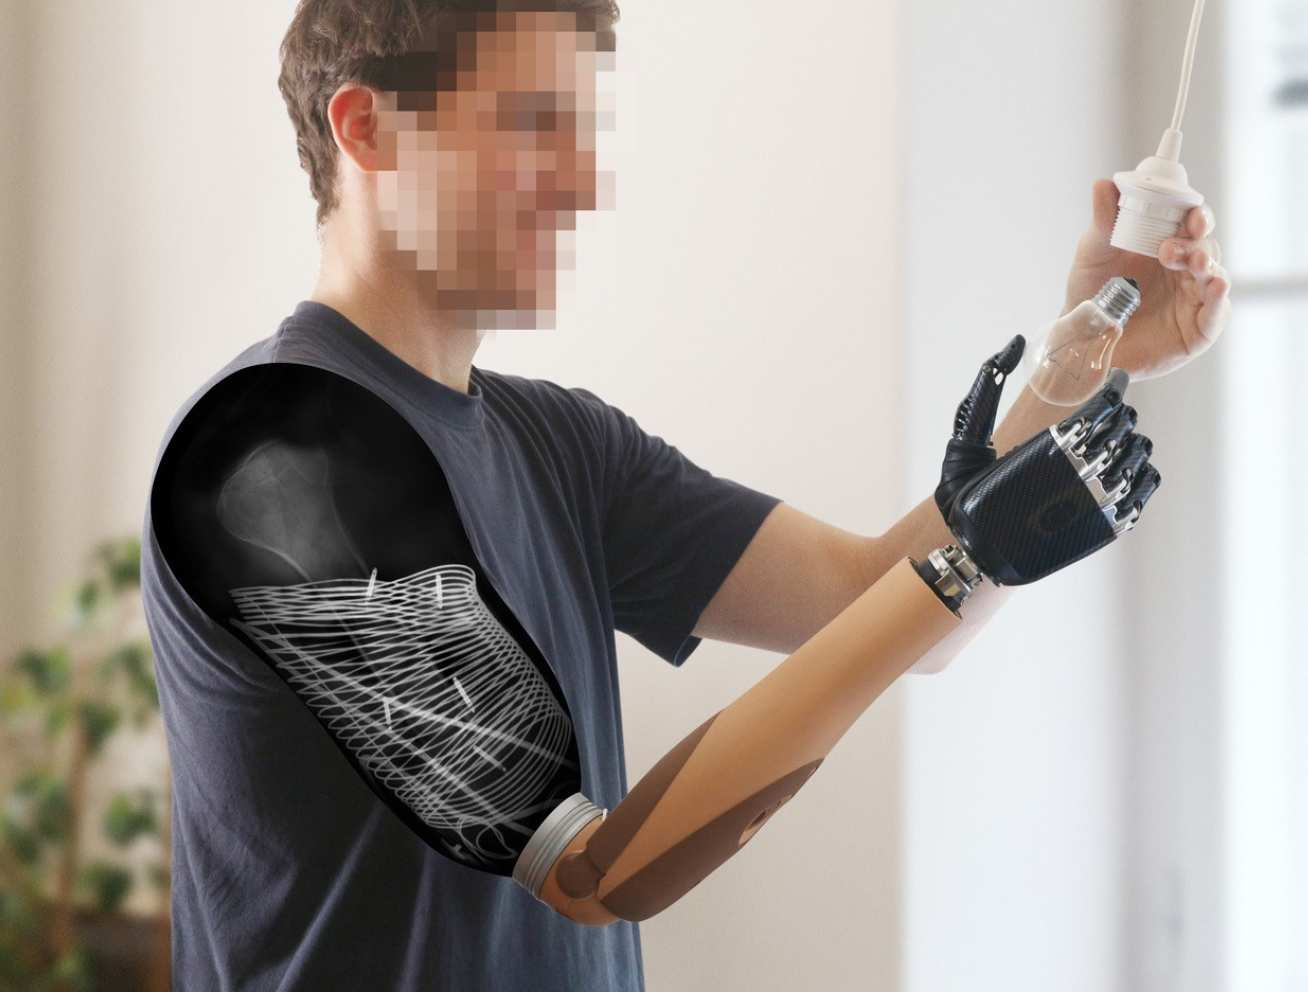 Photo of amputee using his prosthetic to fit a lightbulb. A cut-out shows the inner workings of the electrodes and nerve reinnervation